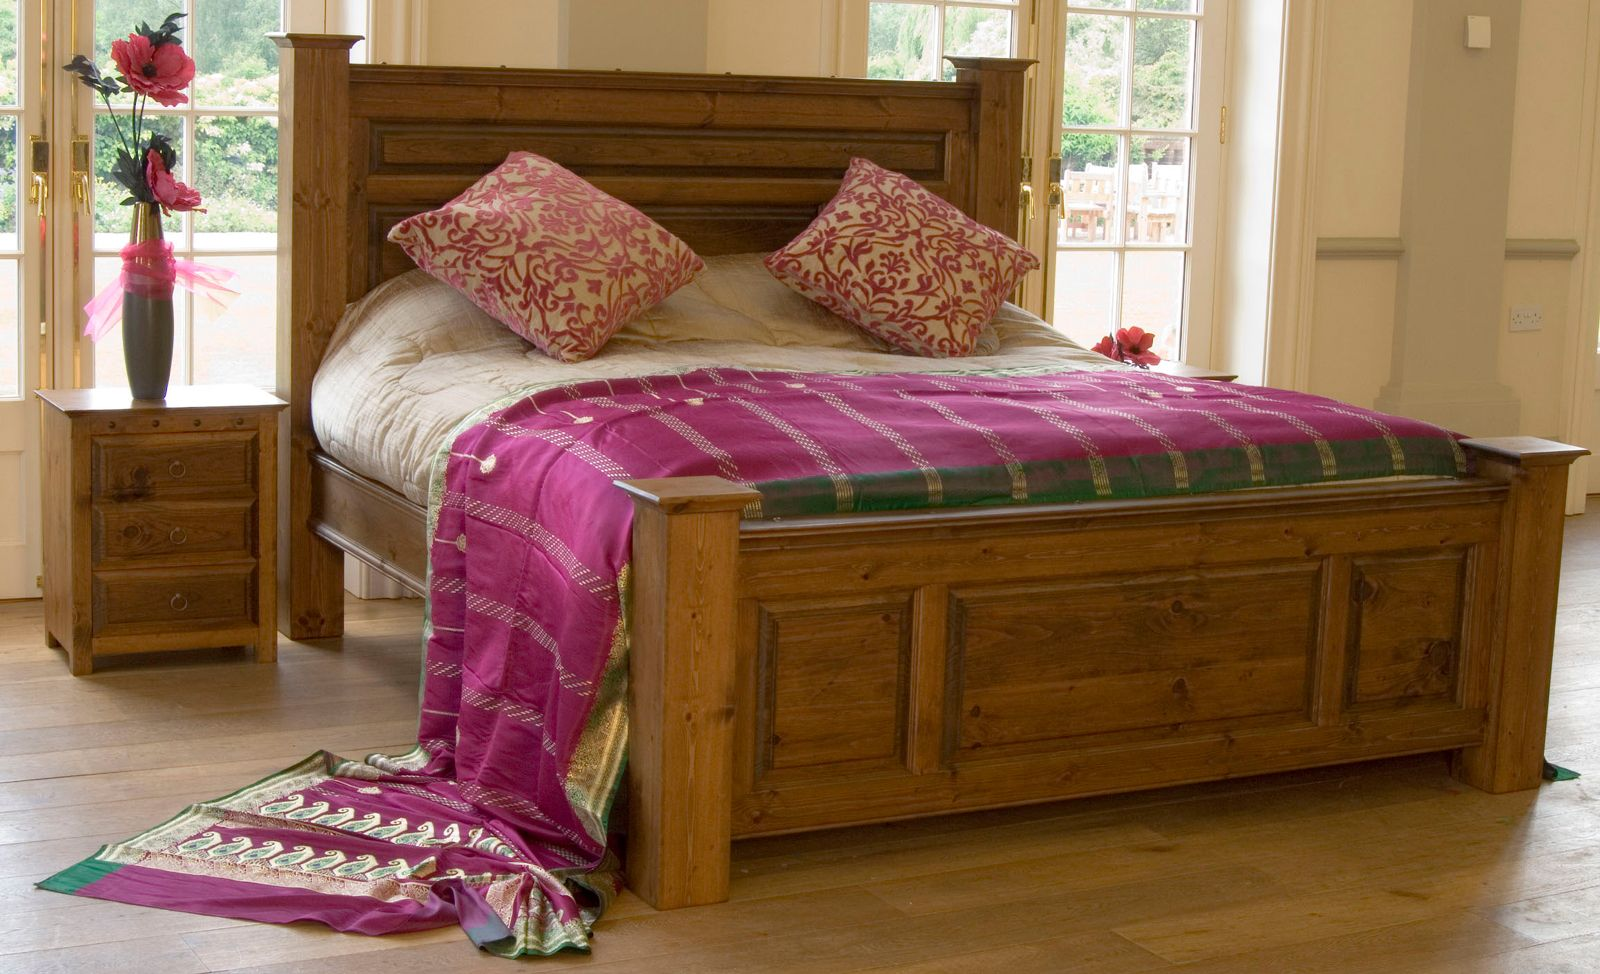 The Ambassador Handmade Beds And King Size Wooden Beds From